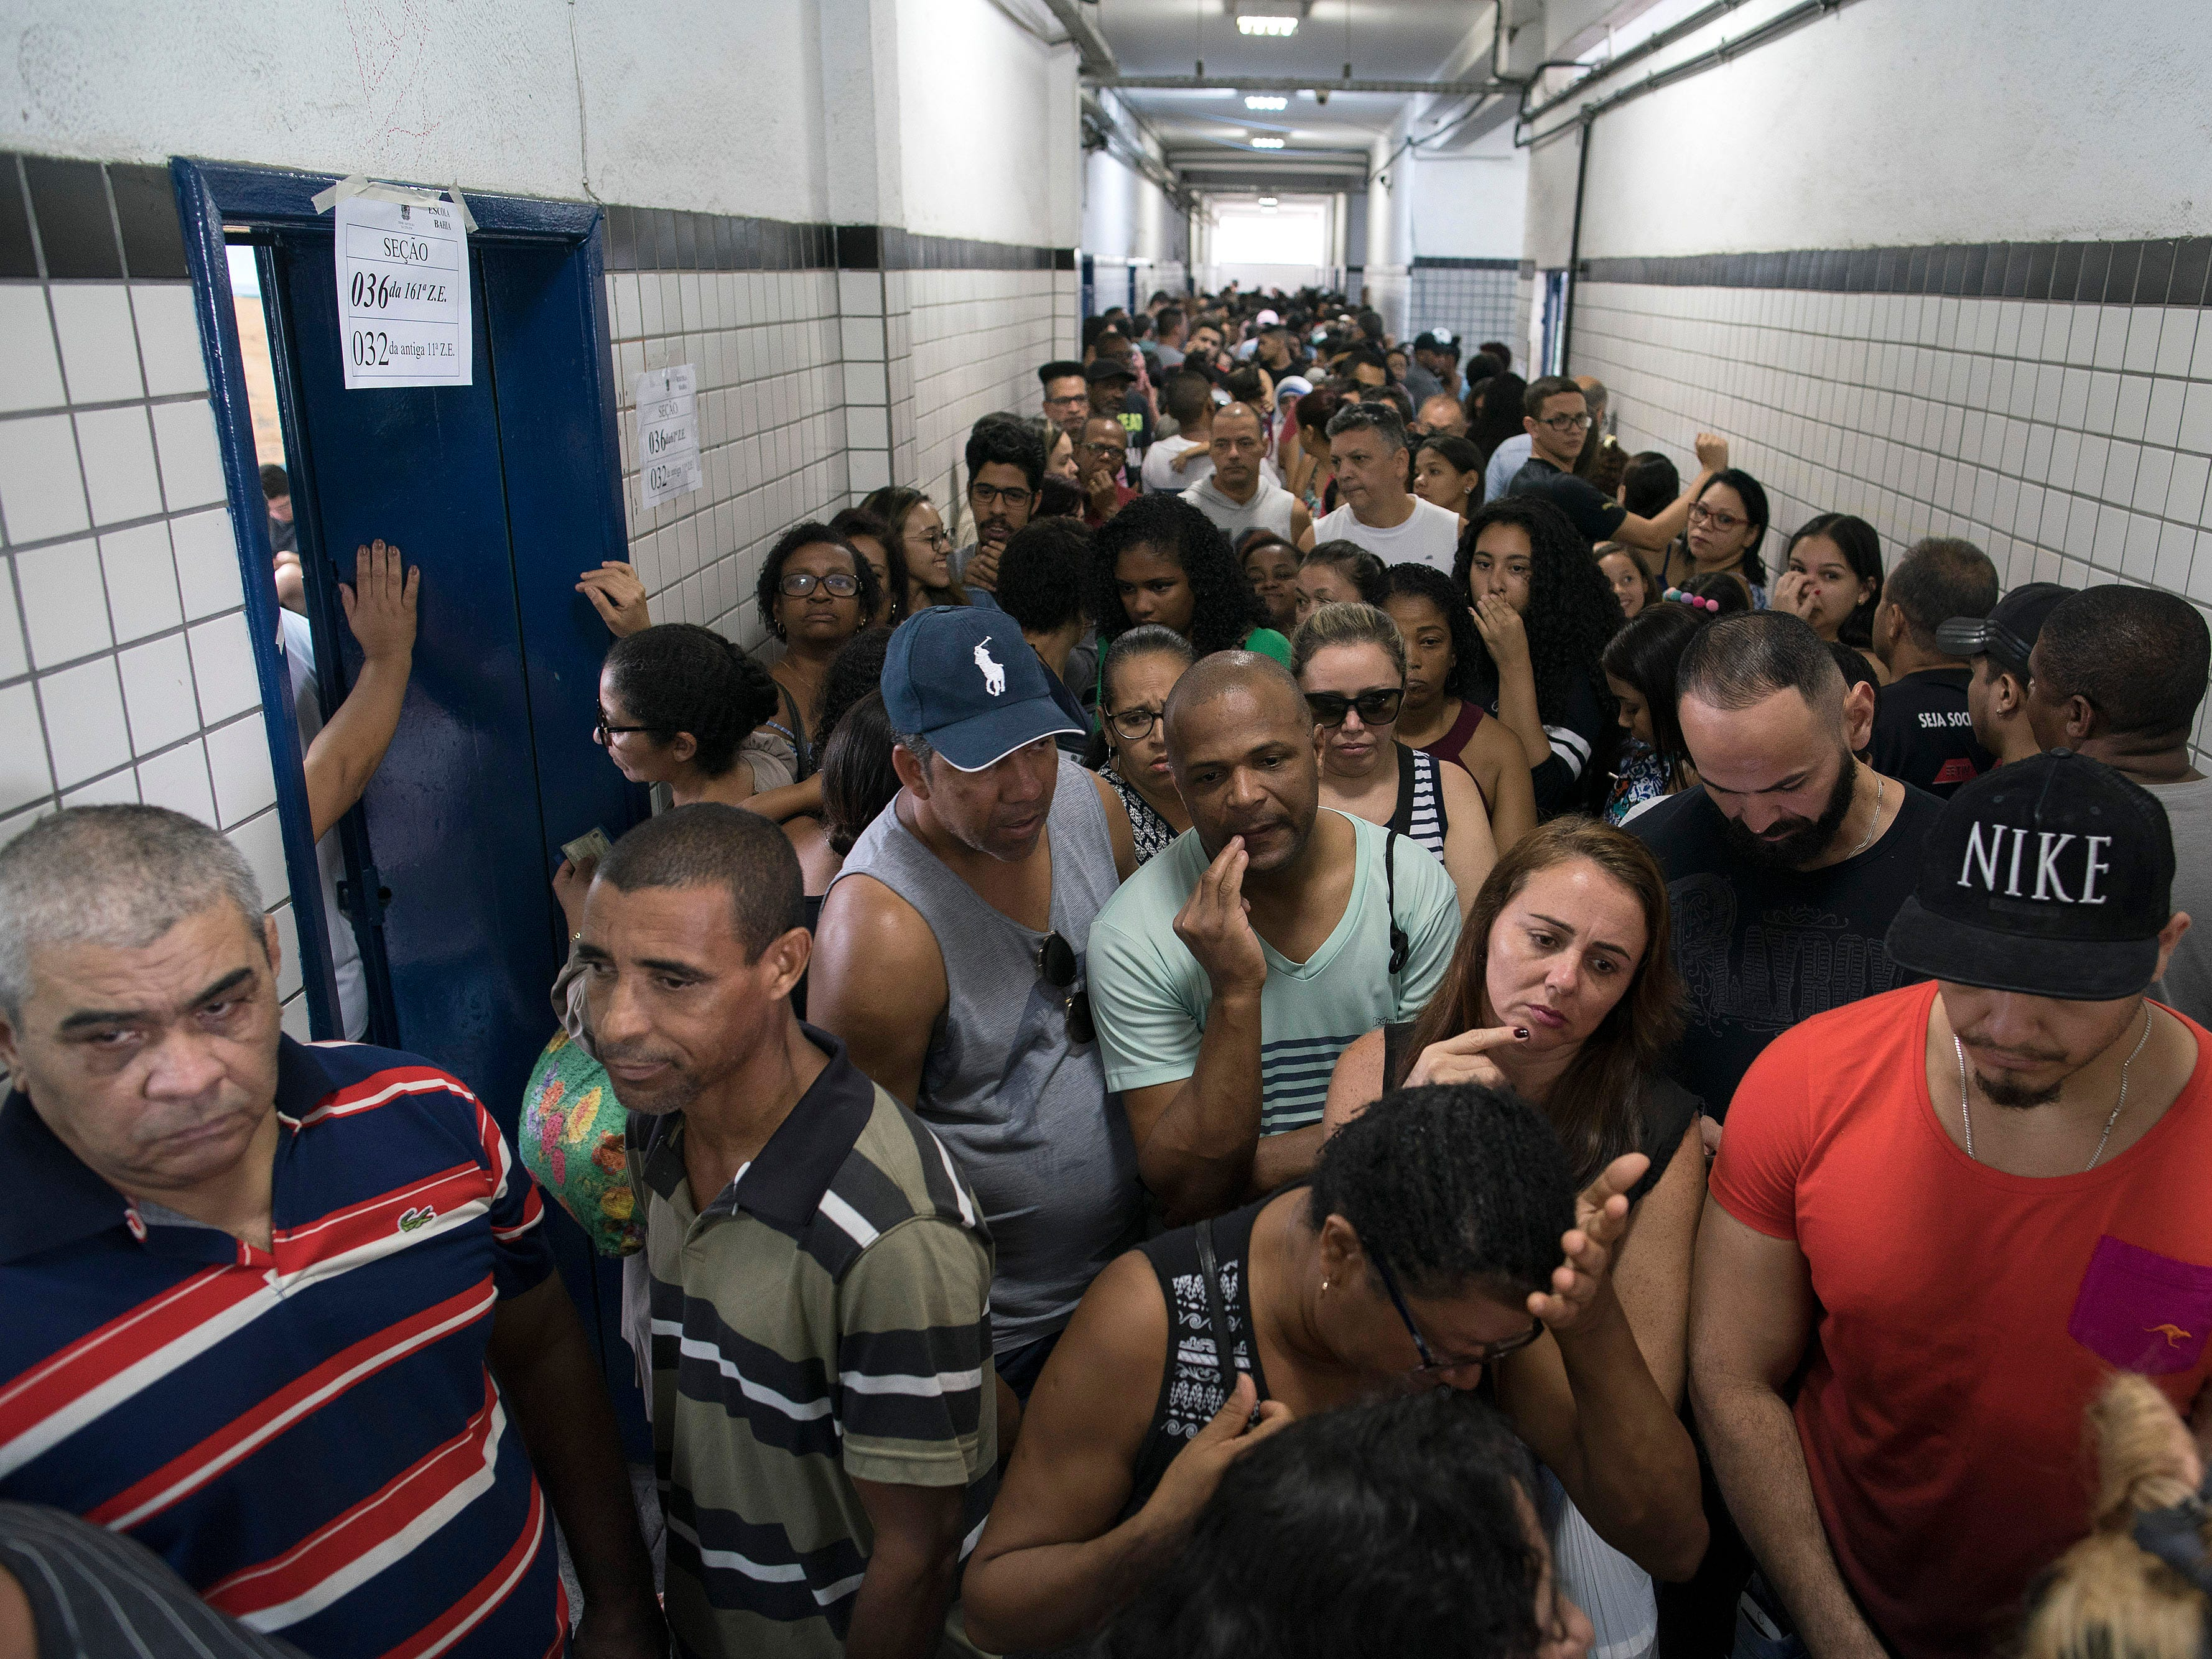 People wait in line to vote in the general election at a polling station in the Mare Complex slum in Rio de Janeiro, Brazil, Sunday, Oct. 7, 2018.  Brazilians choose among 13 candidates for president Sunday in one of the most unpredictable and divisive elections in decades. If no one gets a majority in the first round, the top two candidates will compete in a runoff.